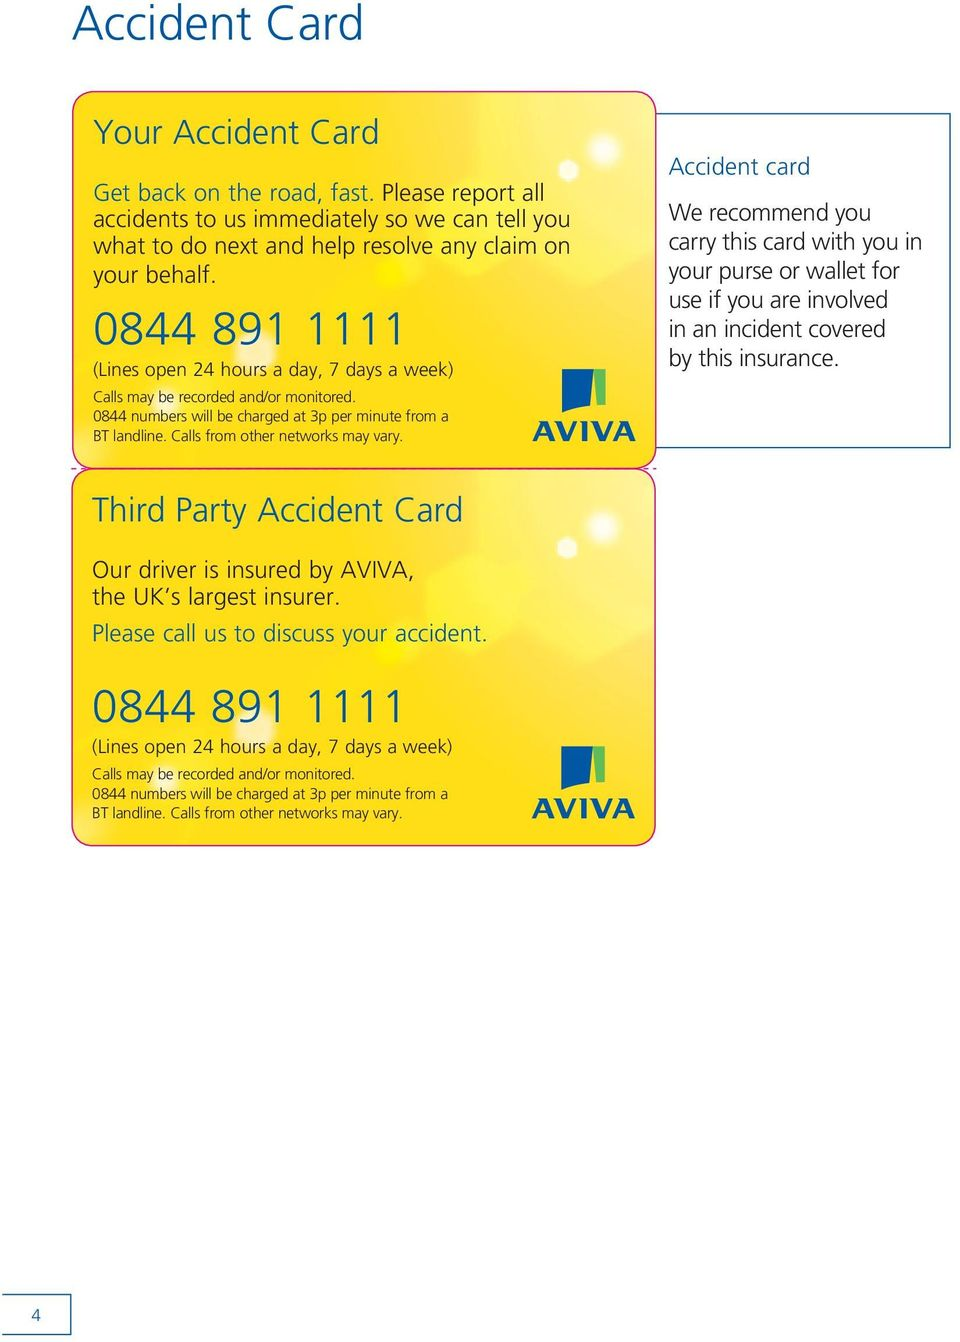 Accident card We recommend you carry this card with you in your purse or wallet for use if you are involved in an incident covered by this insurance.